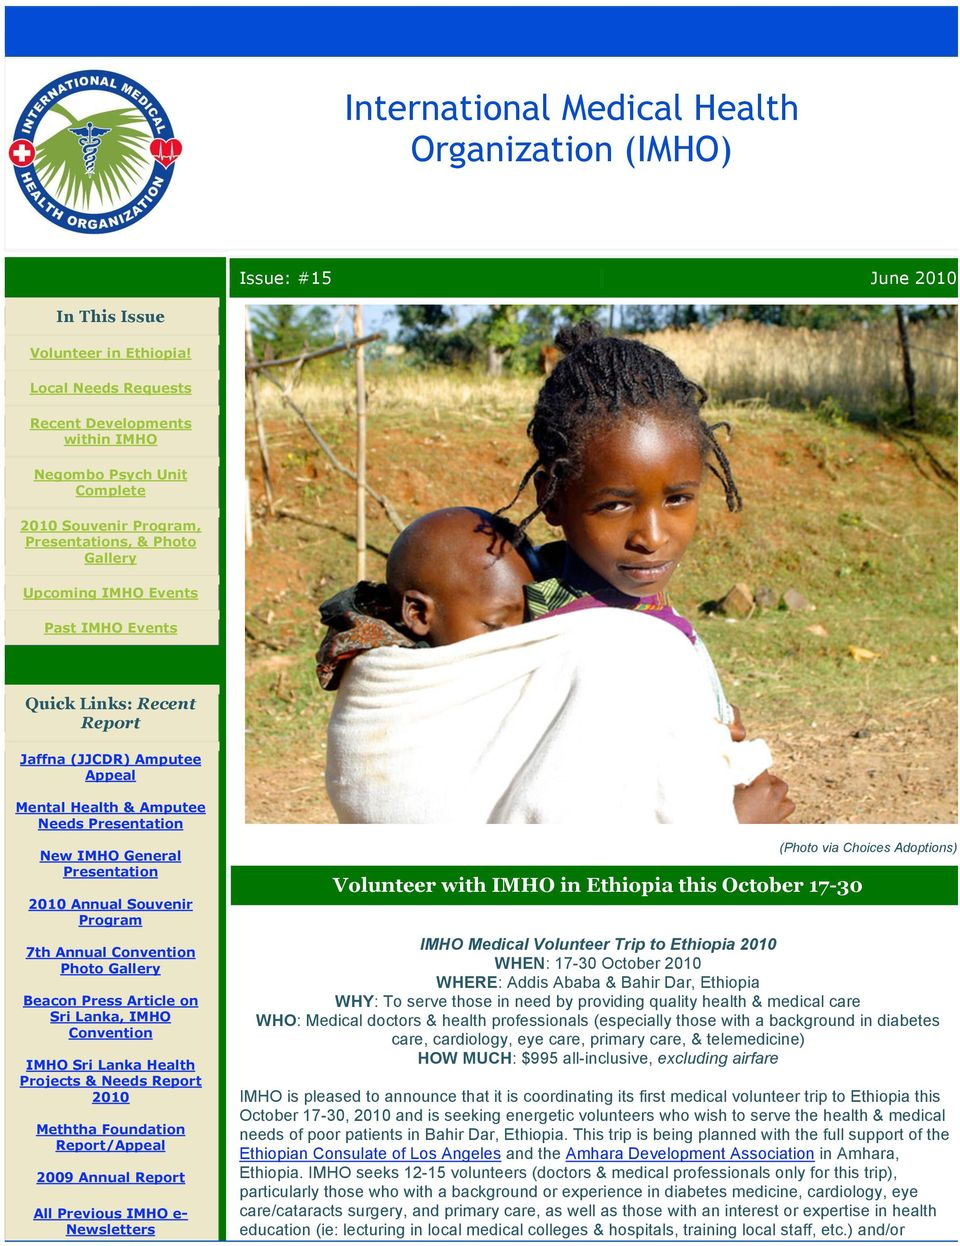 Jaffna (JJCDR) Amputee Appeal Mental Health & Amputee Needs Presentation New IMHO General Presentation 2010 Annual Souvenir Program 7th Annual Convention Photo Gallery Beacon Press Article on Sri